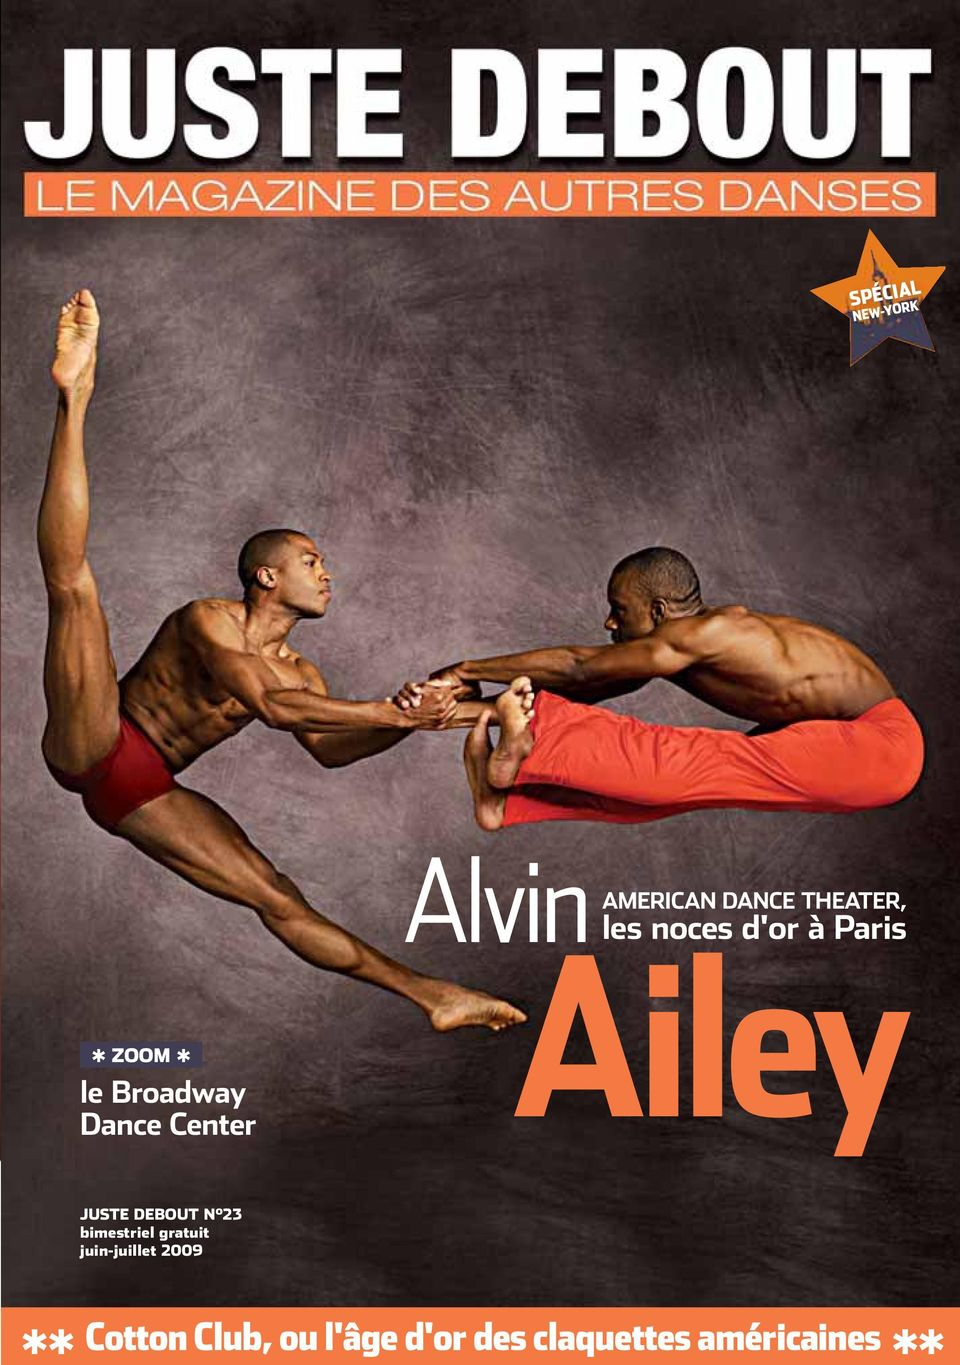 Dance Center Alvin AMERICAN Ailey DANCE THEATER, les